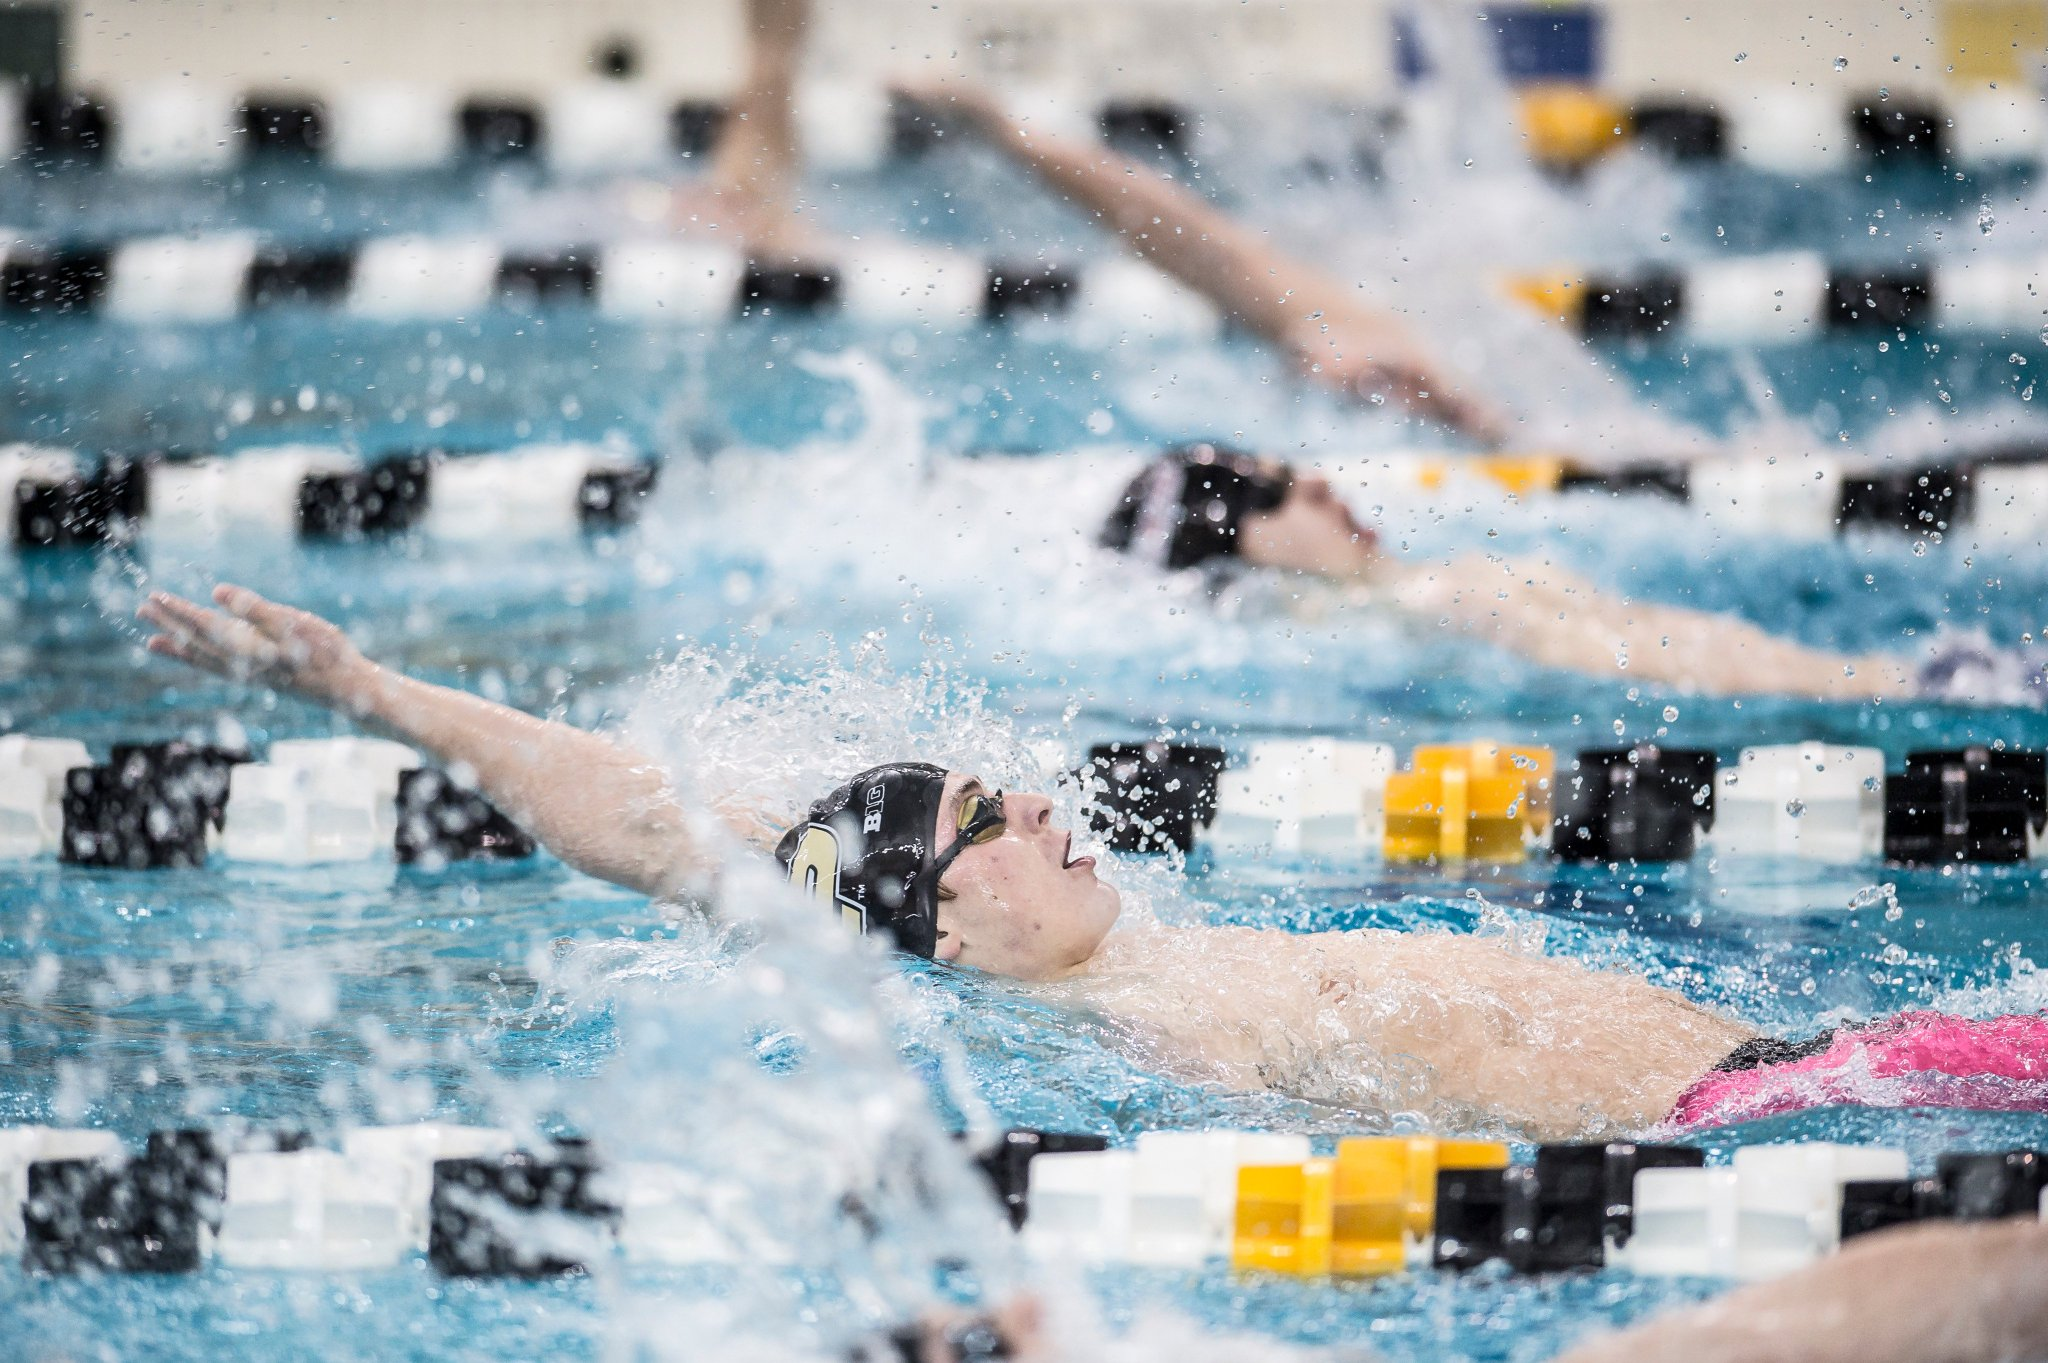 Purdue Swim Dive On Twitter Tim Swimmybarth Wins Heat 1 Of The 200 Back With Time Of 1